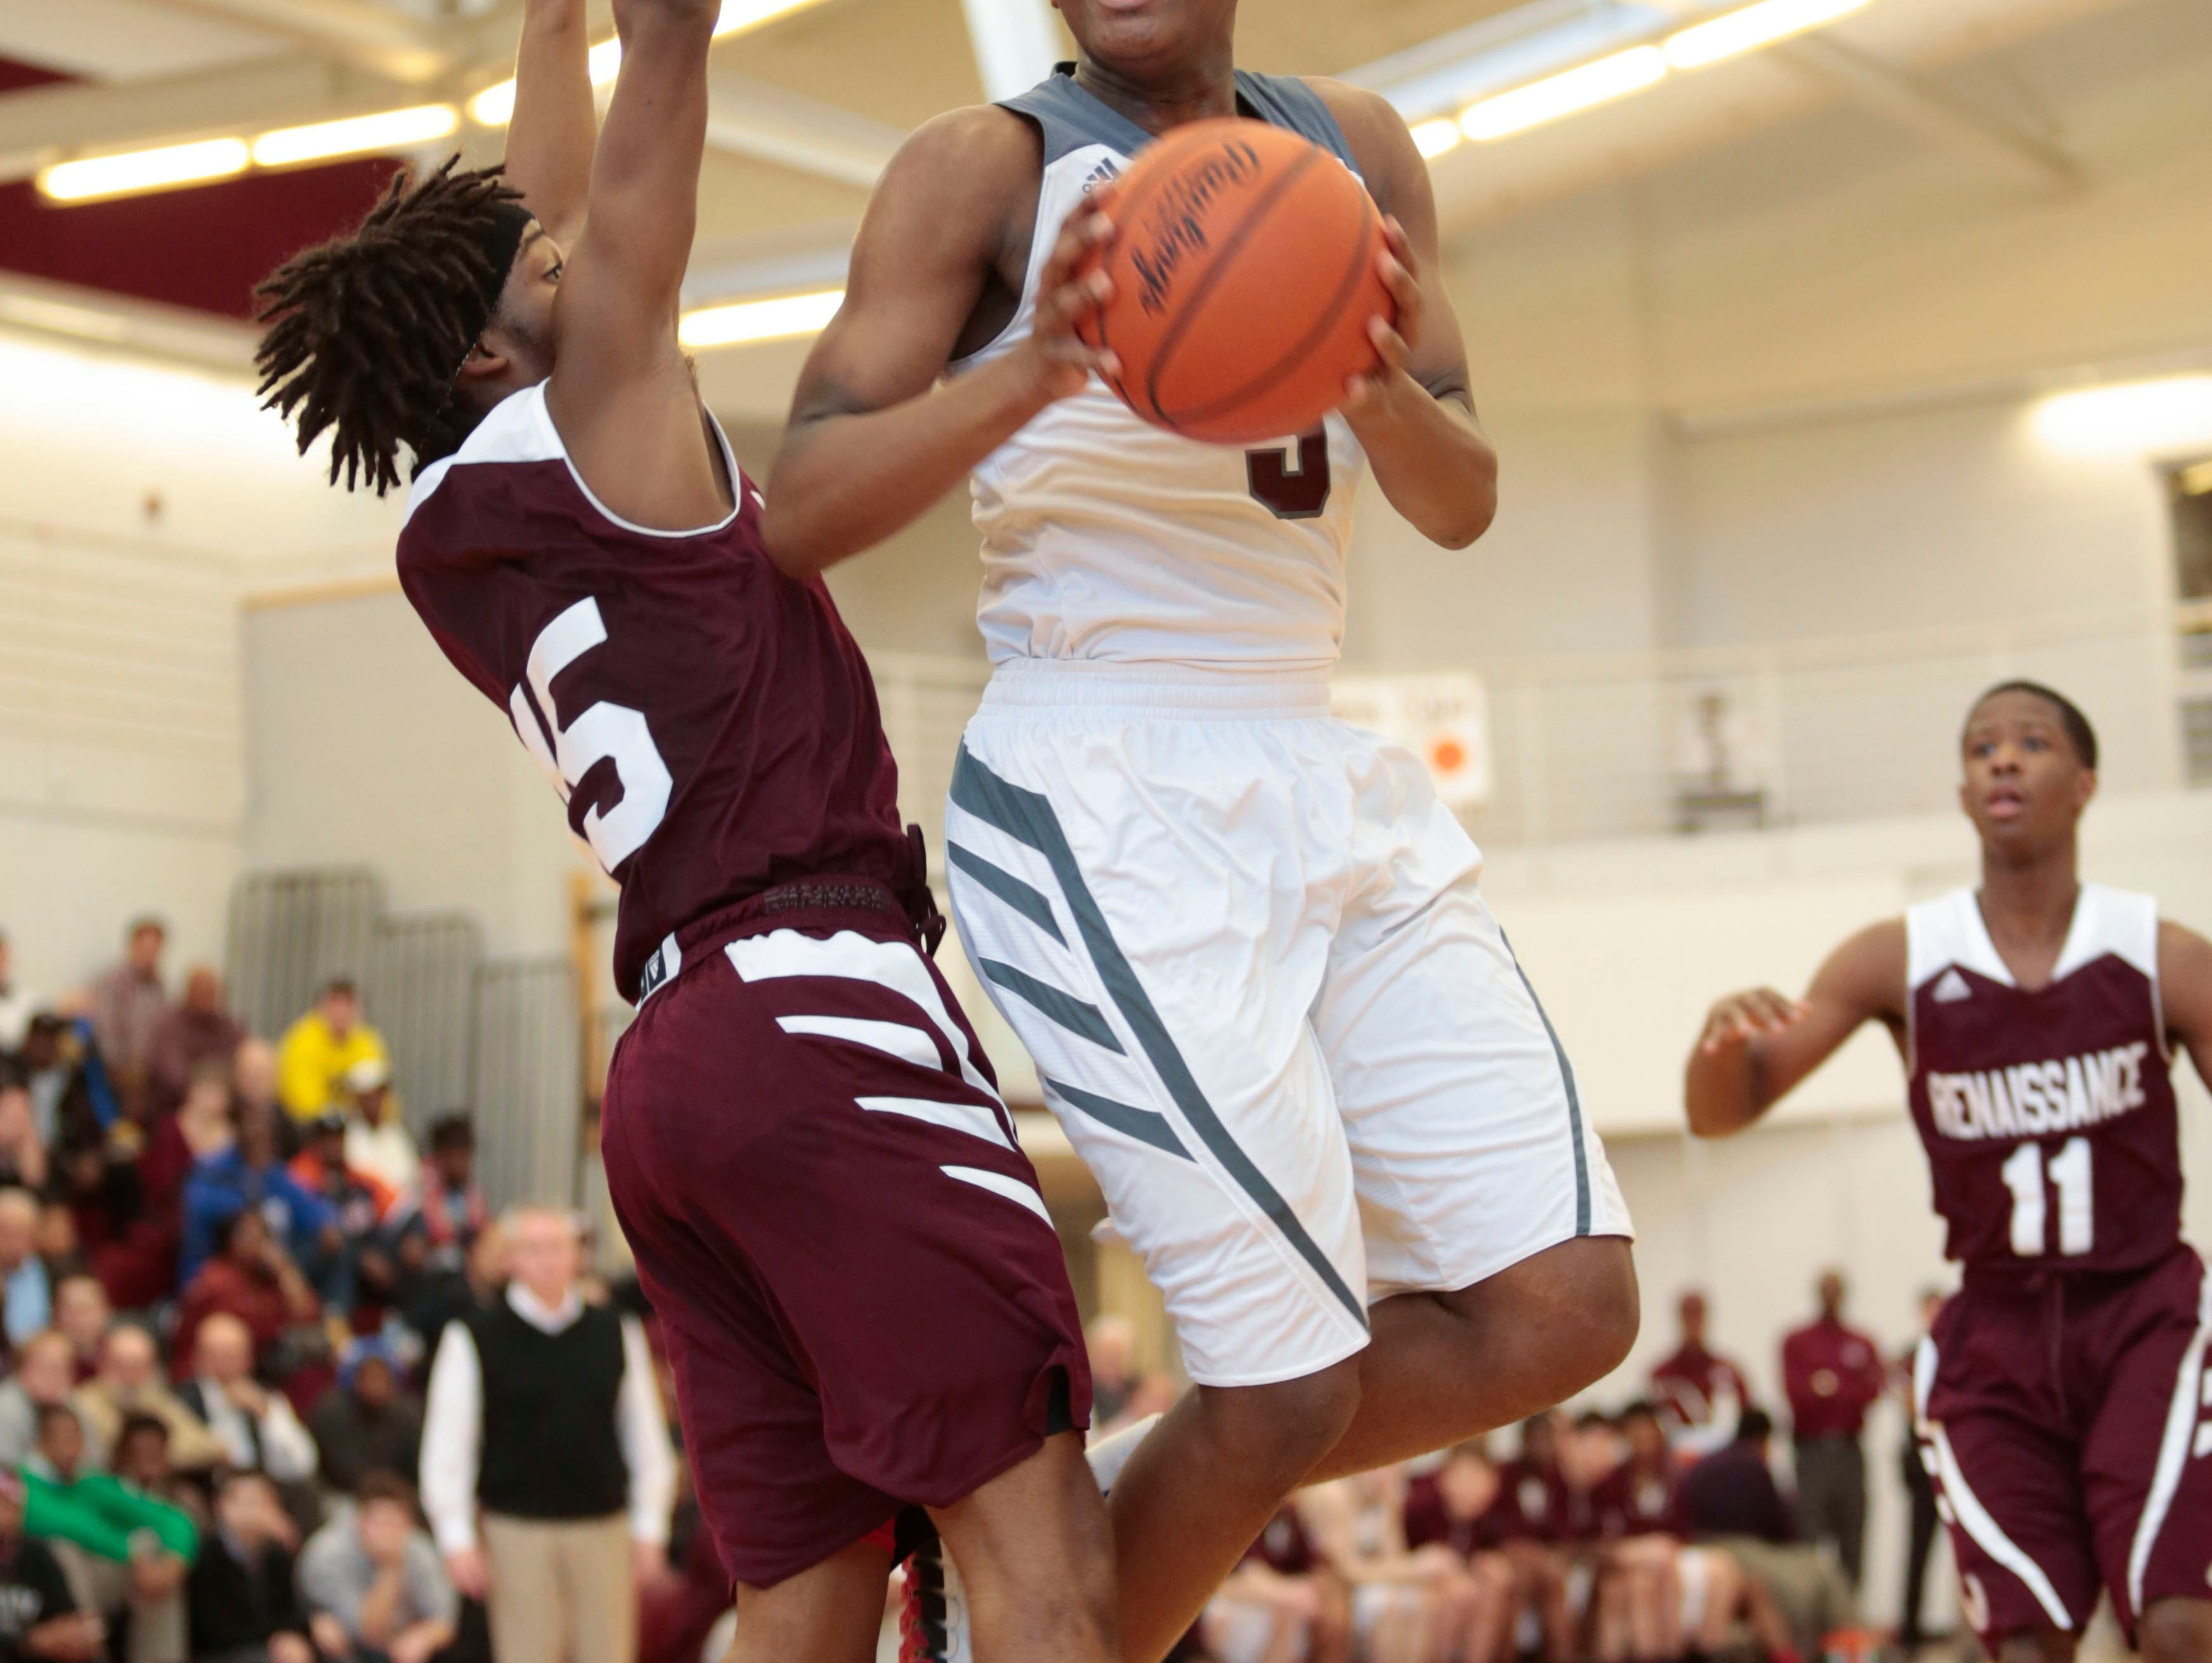 Renaissance's Darryl Smith (15/G) tries to block a shot by U of D's Cassius Winston (5/G) during the Detroit Renaissance vs, U of D Jesuit district semi-final boys' basketball game on Wednesday, March 11, 2015 at Detroit Renaissance High School in Detroit. U of D Jesuit beat Detroit Renaissance 66 to 53. Tim Galloway/Special for DFP